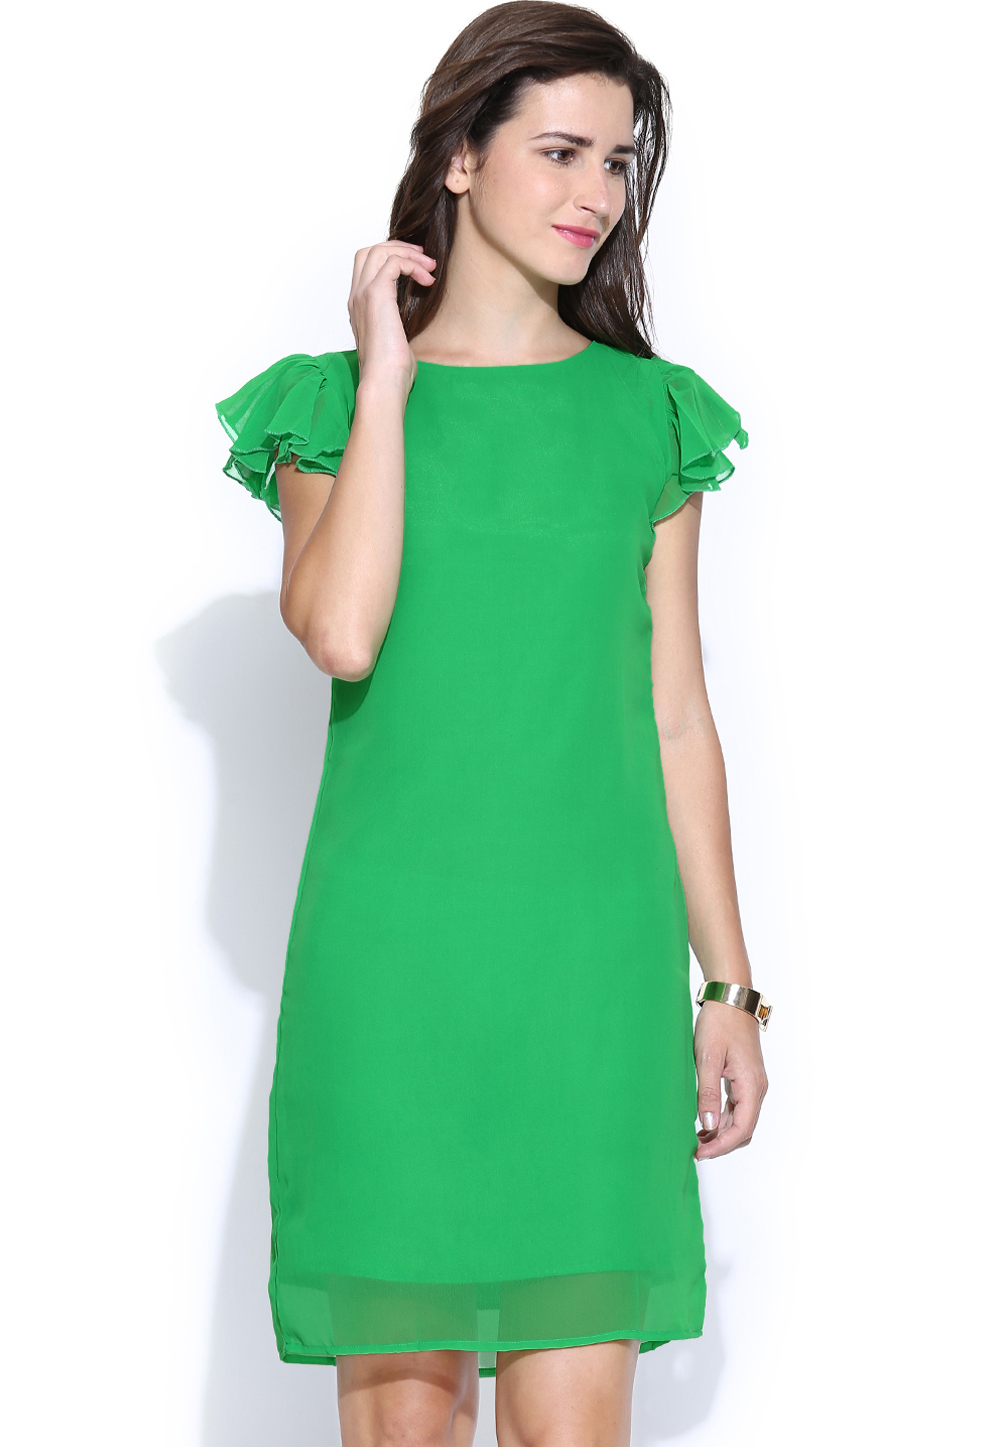 Green Polyester Readymade Tops 188731